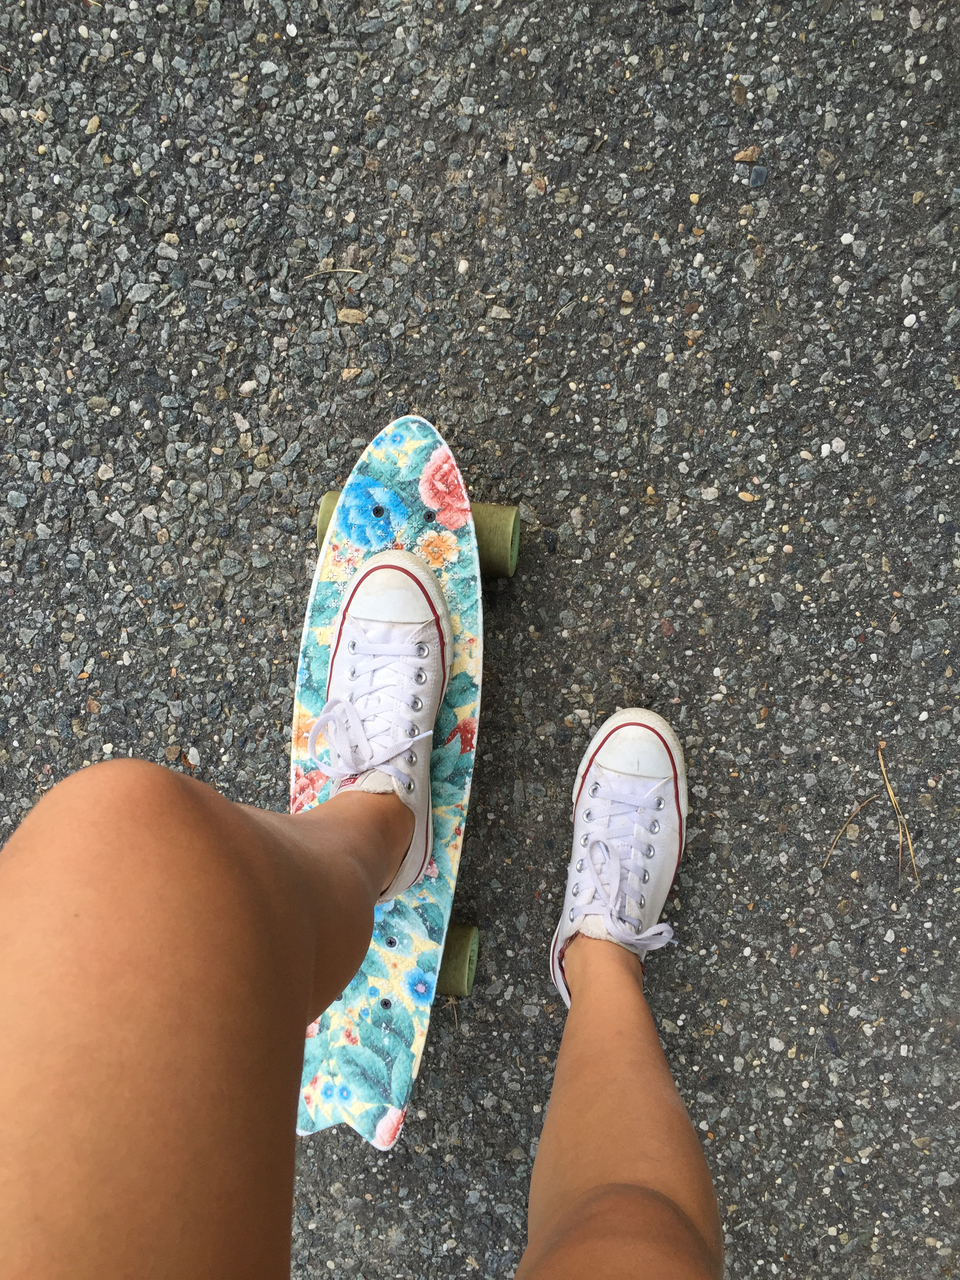 background, converse, cool, floral, globe, goals, legs, love, penny board, pretty, print, road, skate, skateboarding, summer, tan, white